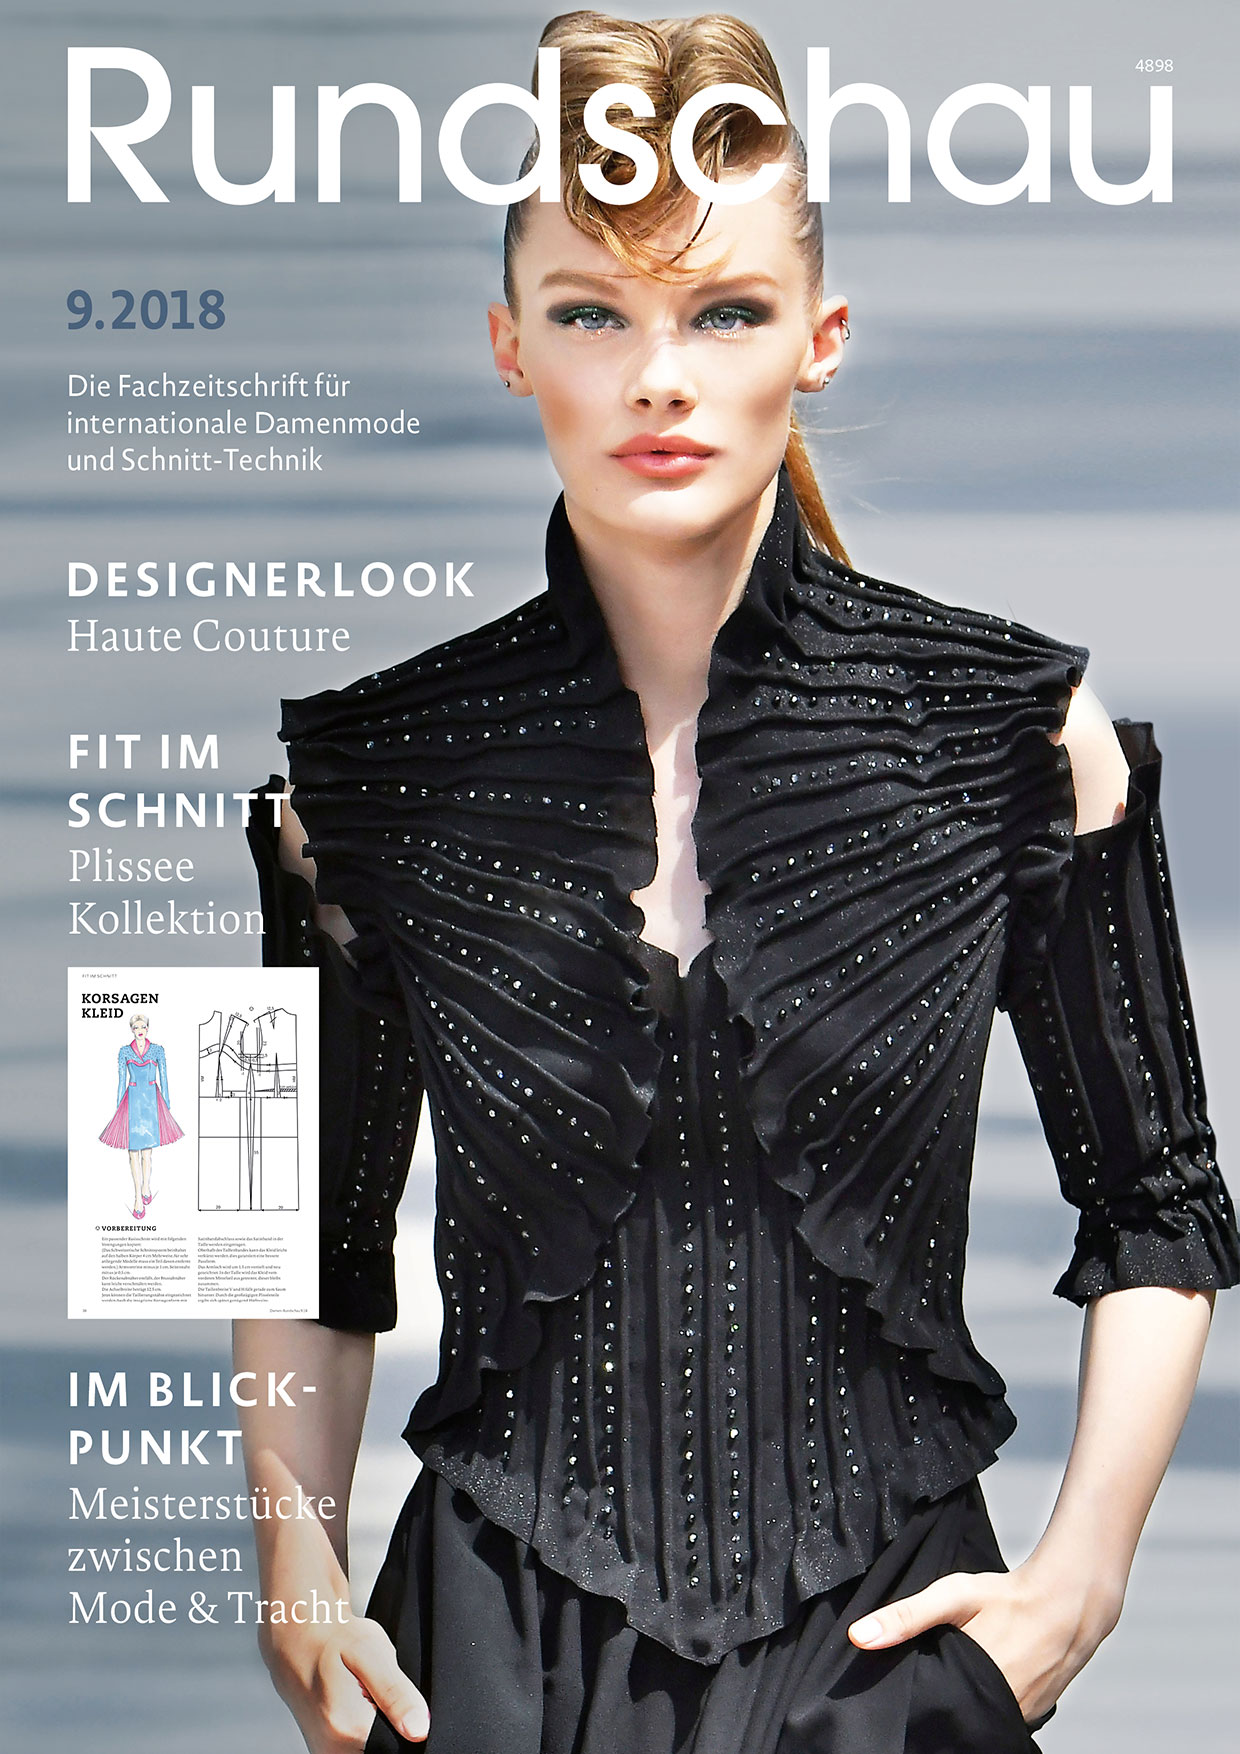 Produkt: Rundschau für Internationale Damenmode 9.2018